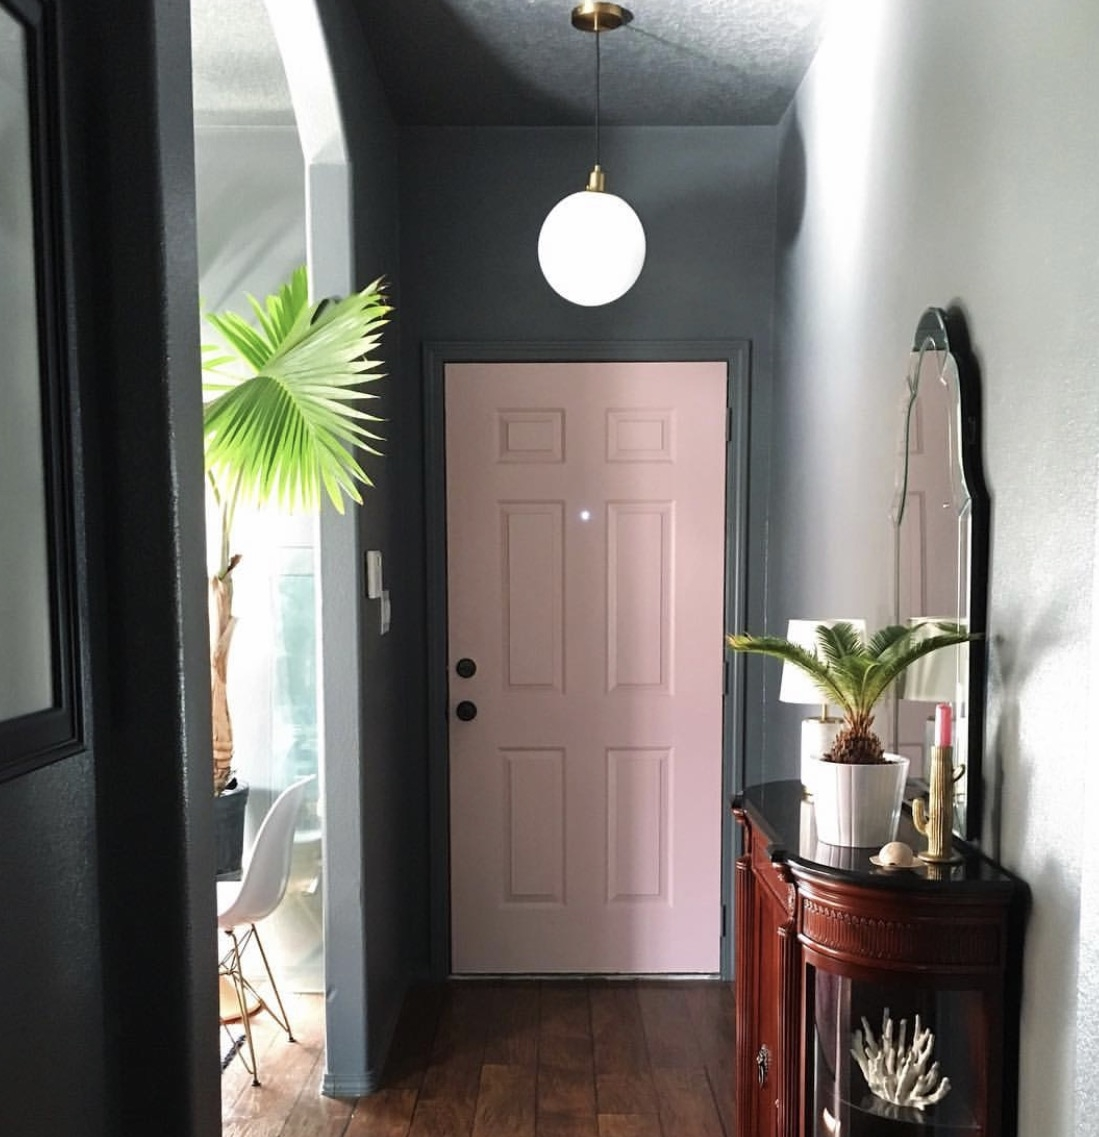 Nichol Naranjo  has effectively combined dark walls with a pop of pale pink for her front door.